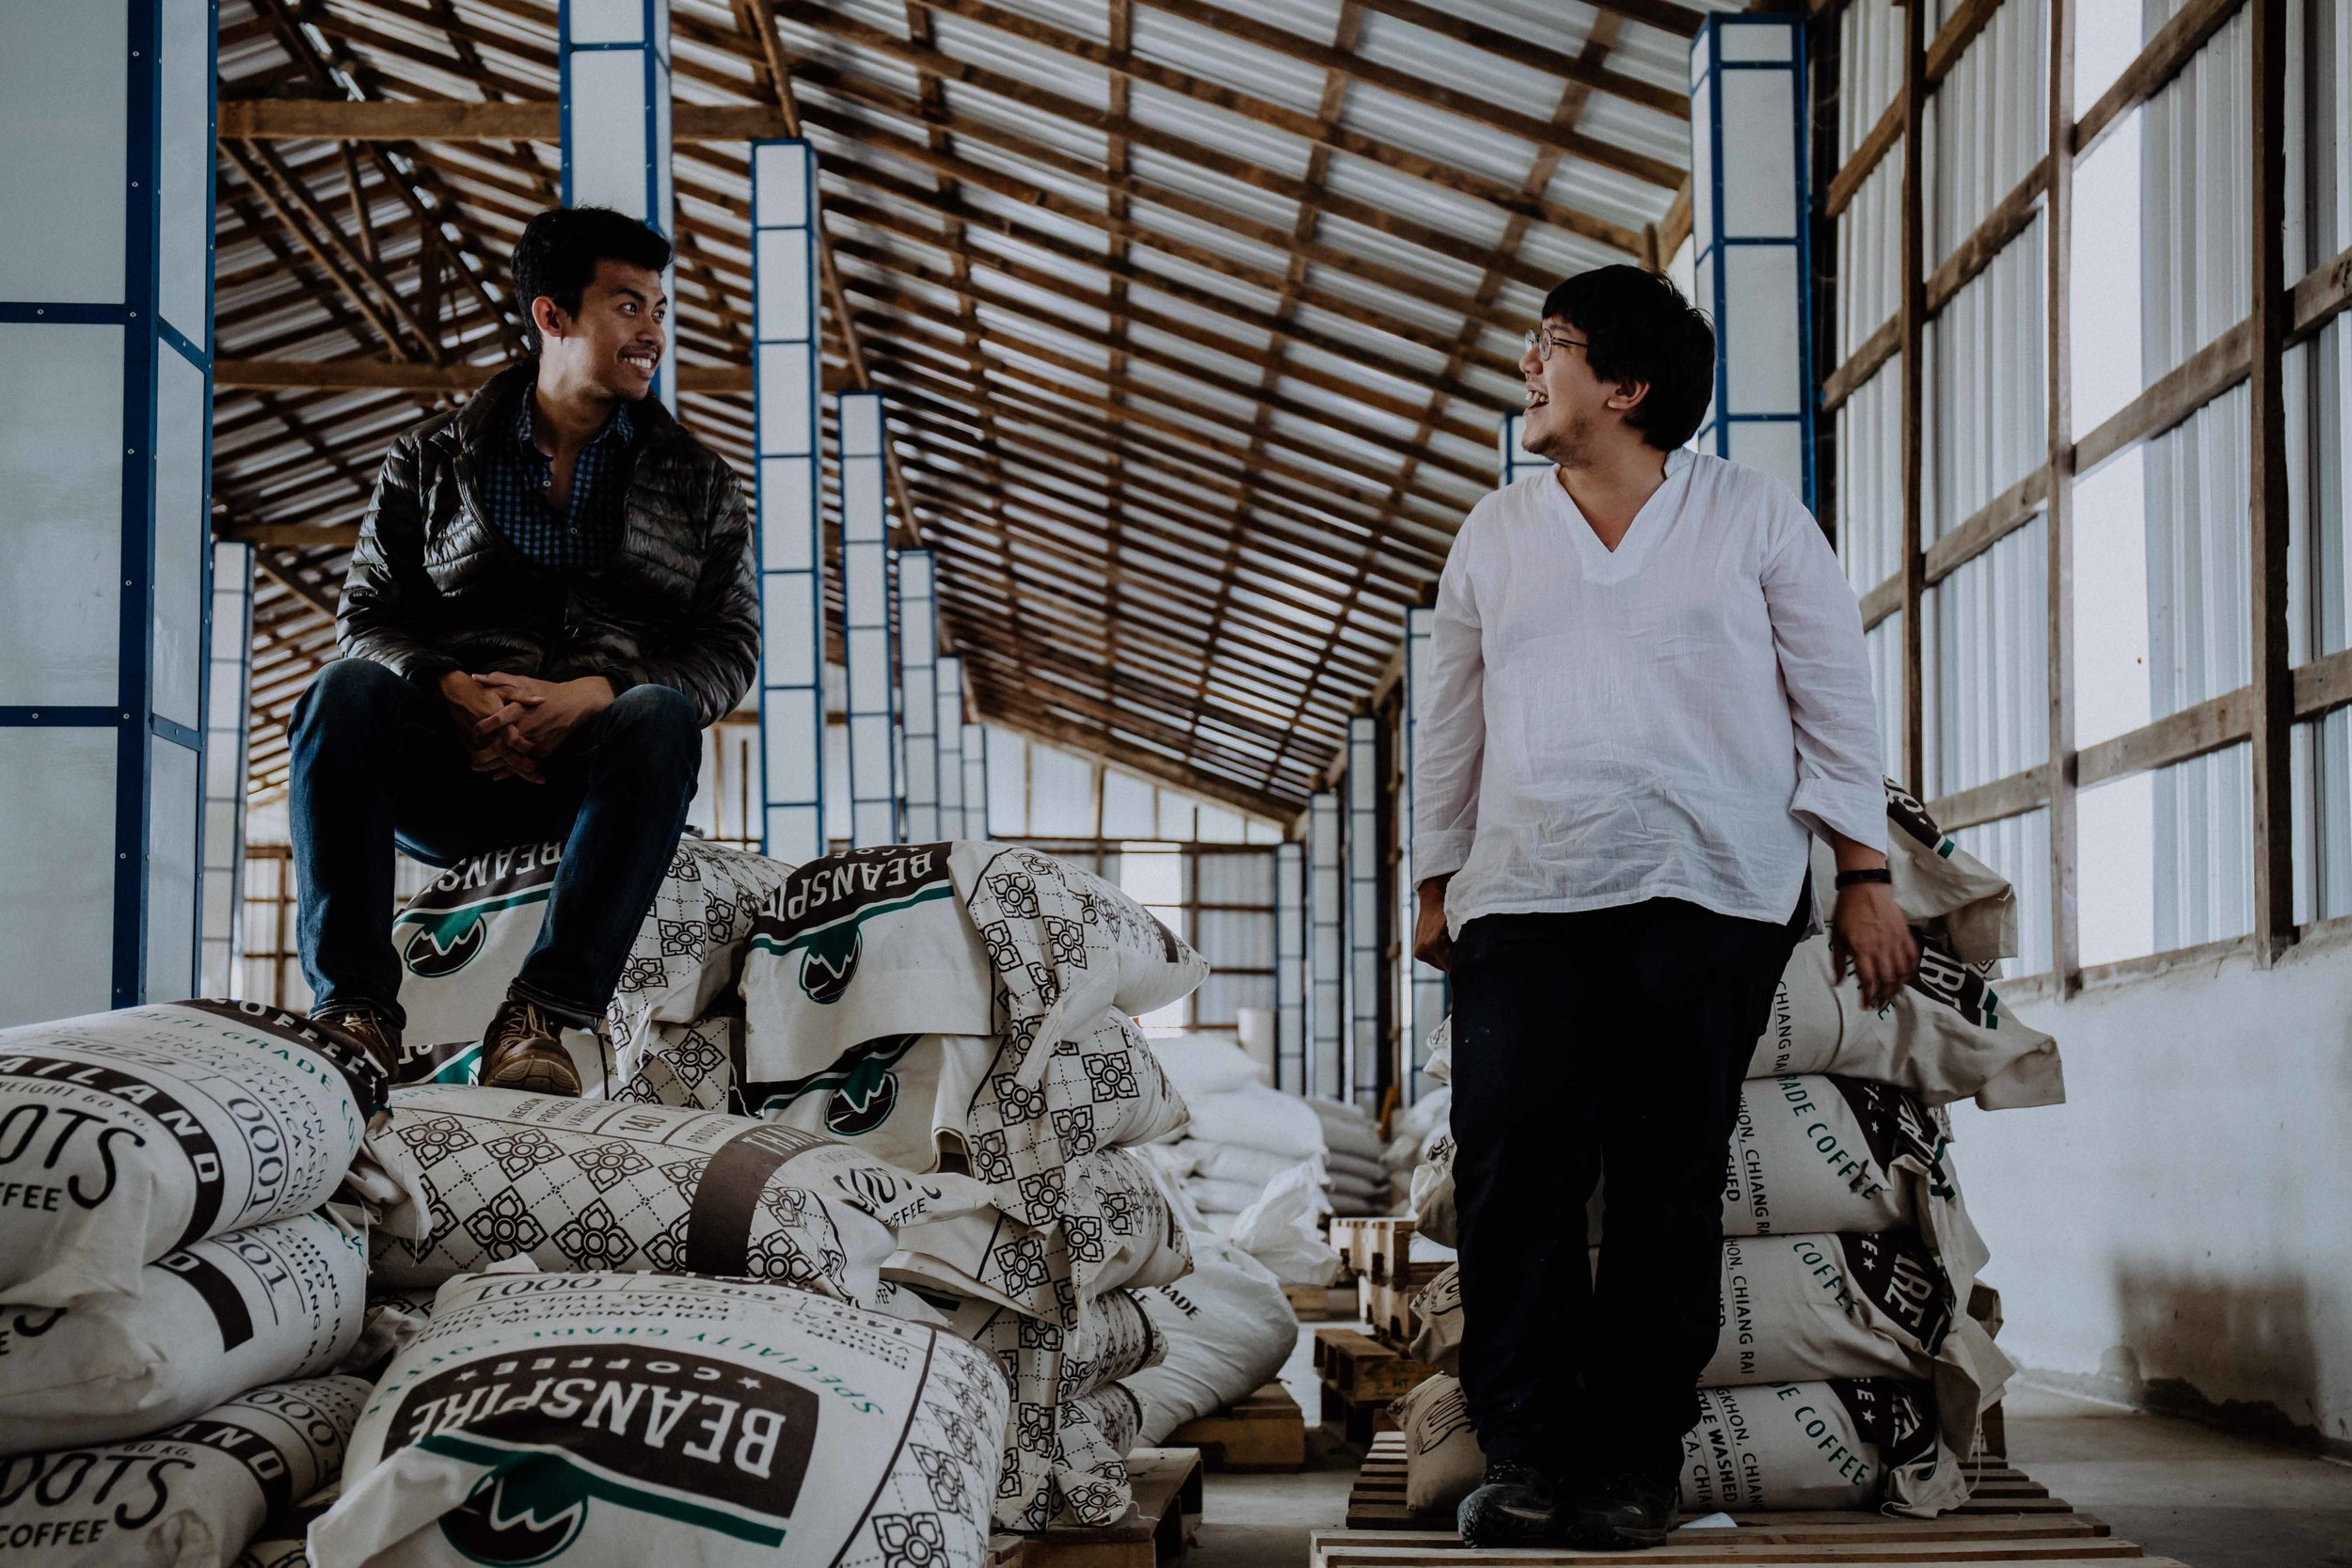 Fuadi and Korn, who is head roaster at Roots, together at the Beanspire dry mill